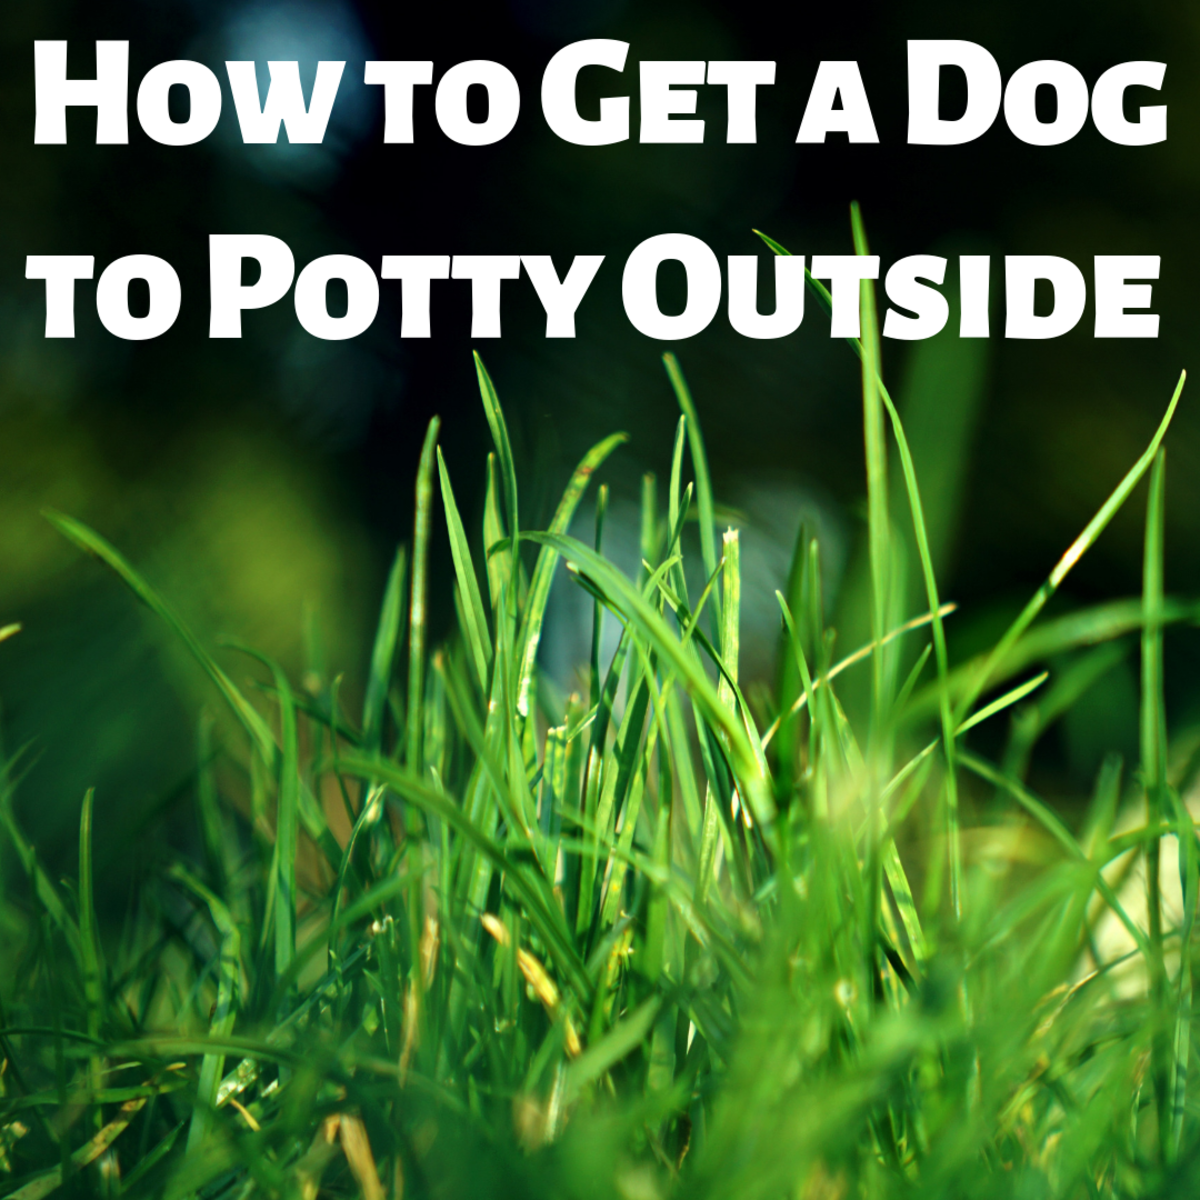 How to Get a Dog to Potty Outside